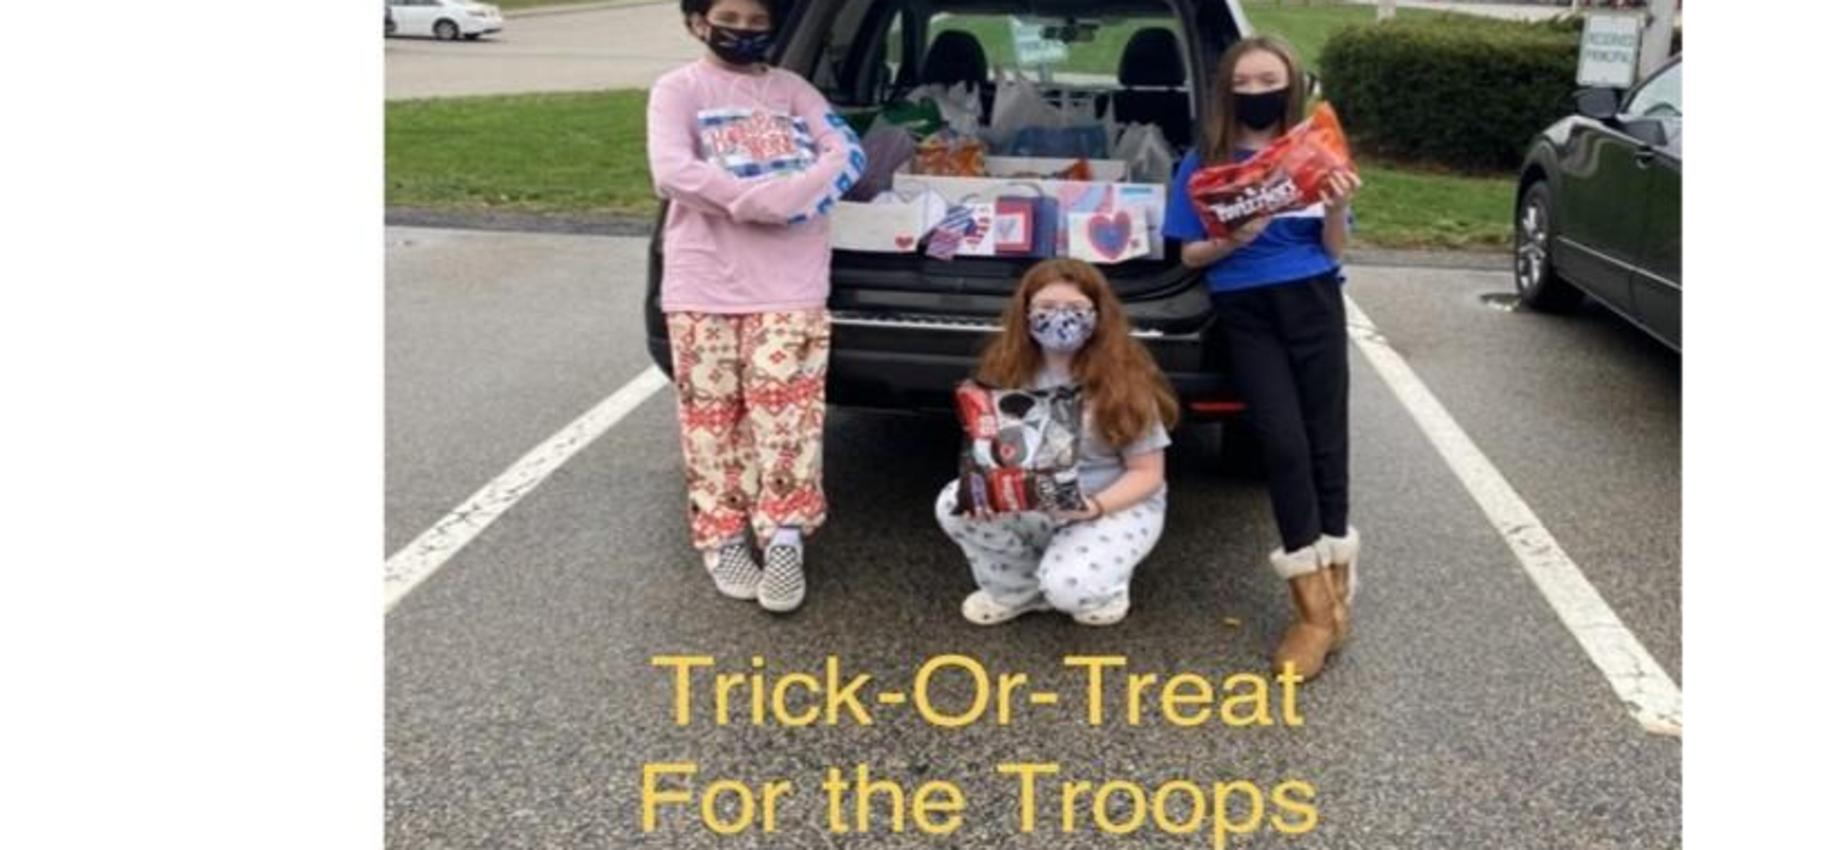 Trick-Or-Treat For the Troops 2020